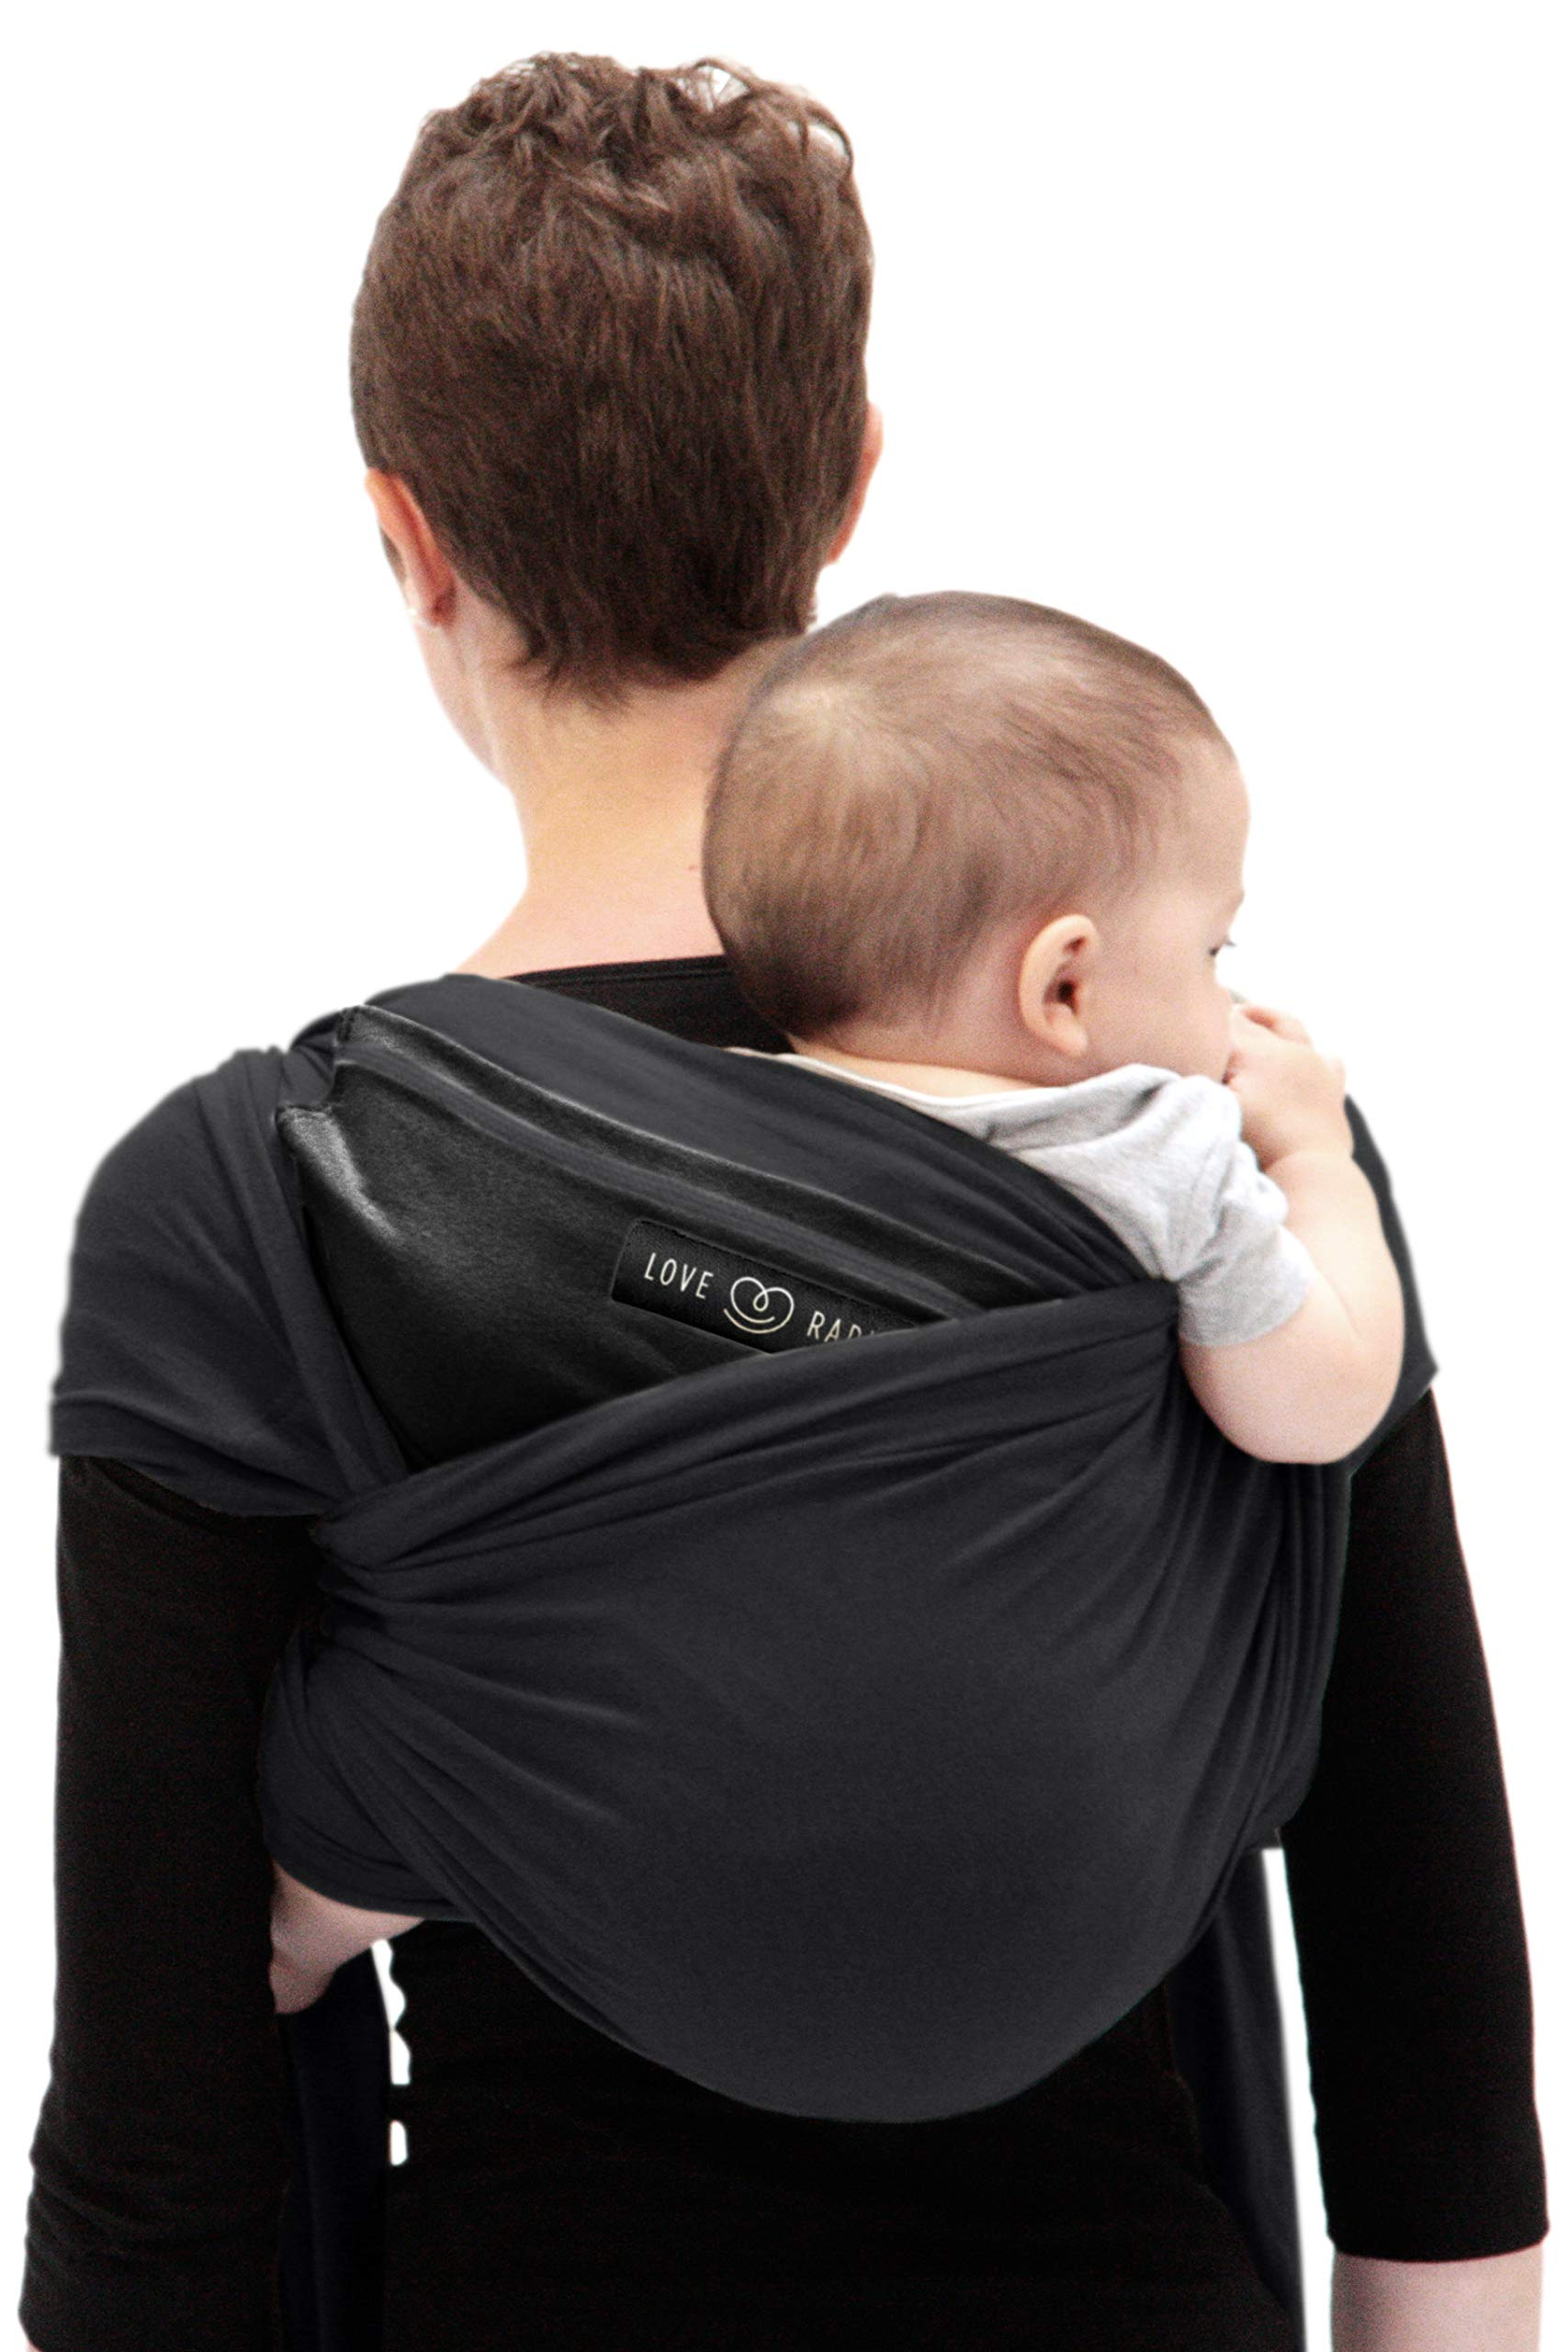 Je Porte Mon Bébé L'Originale Baby Sling Je Porte Mon Bébé High Quality Elastic Baby Carrier Dense, elastic and breathable material Great support, fits your baby's body like a second skin. 21